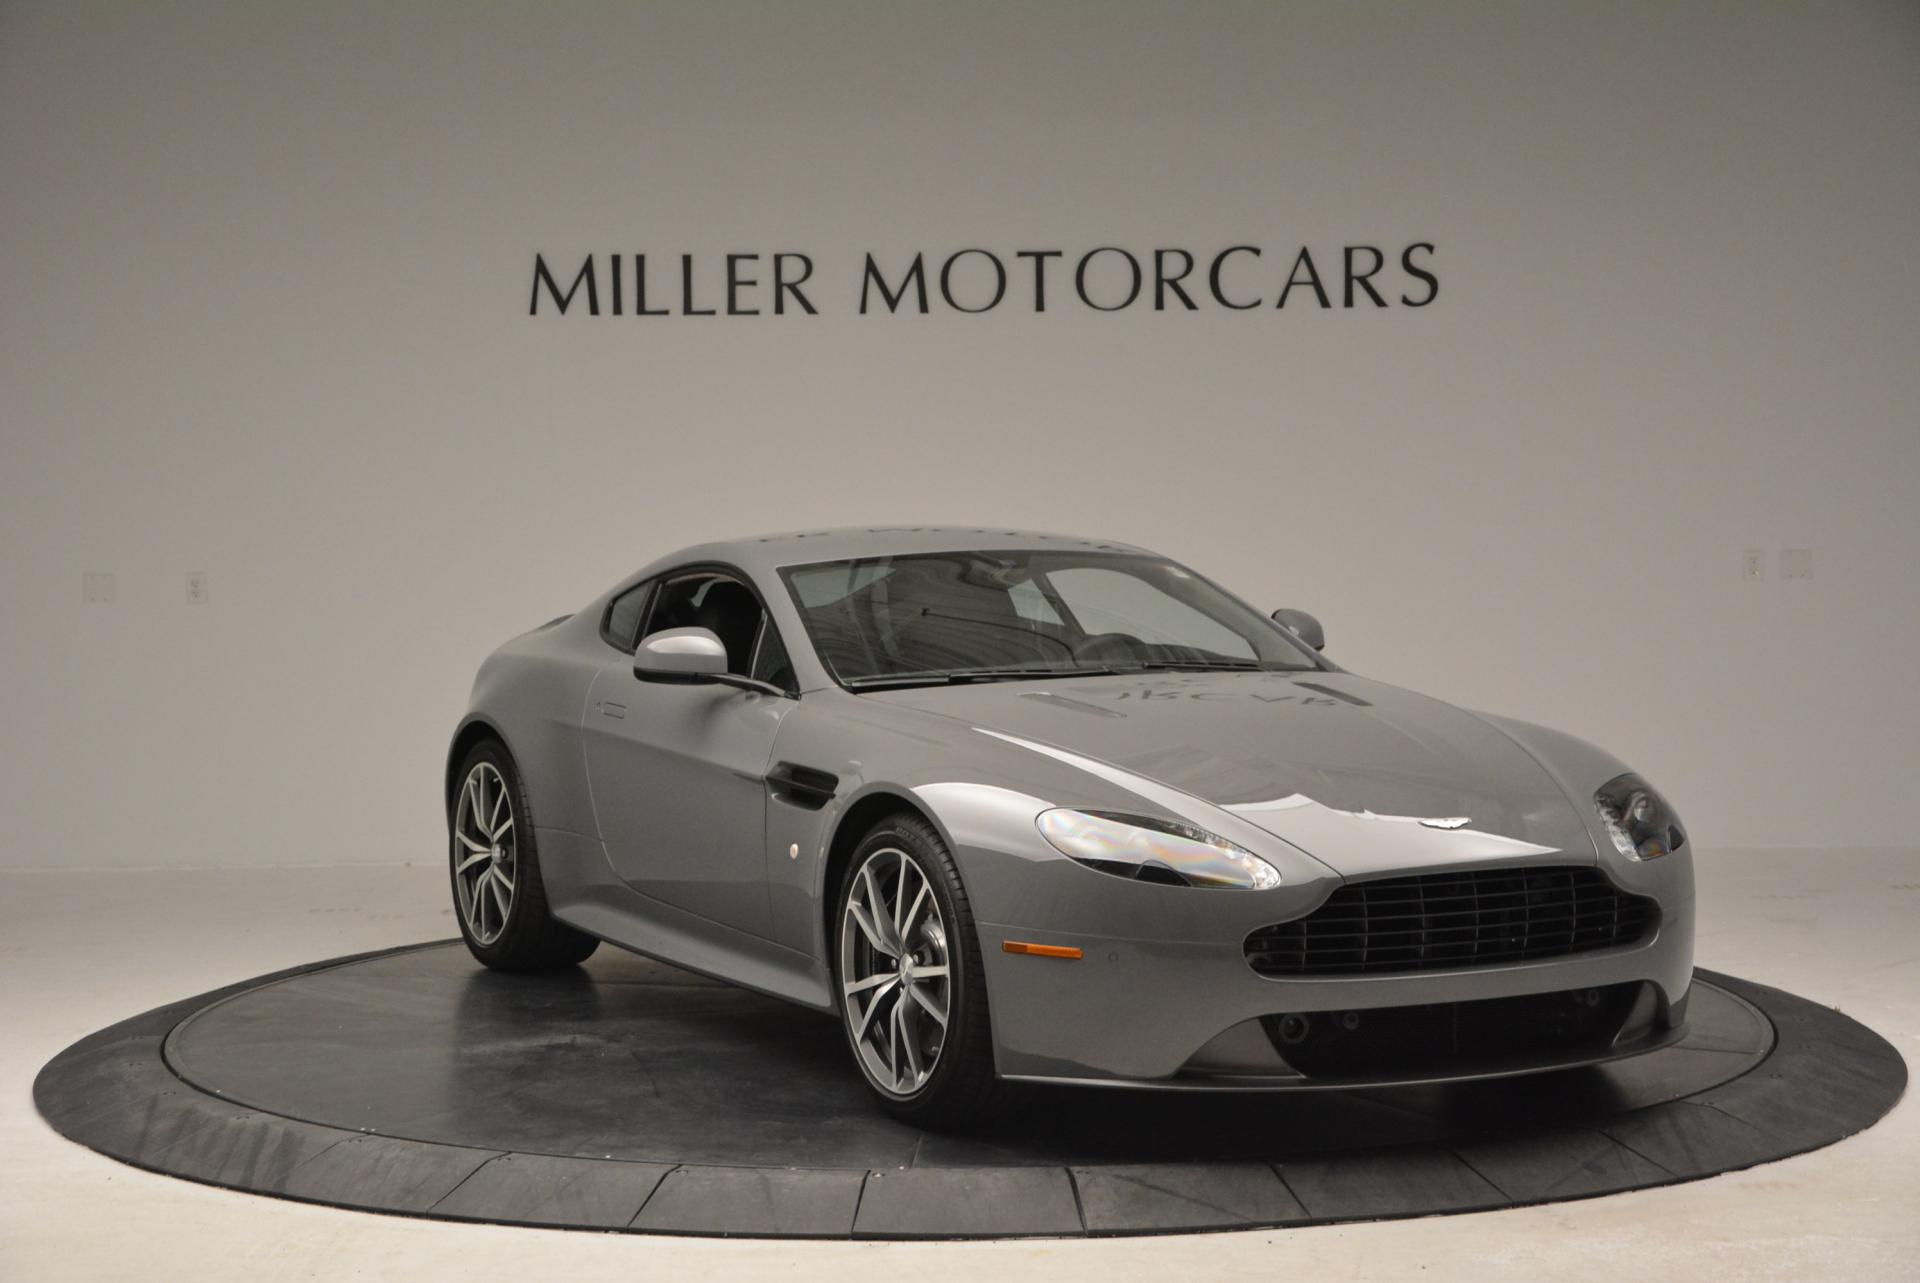 New 2016 Aston Martin Vantage GT  For Sale In Westport, CT 100_p11